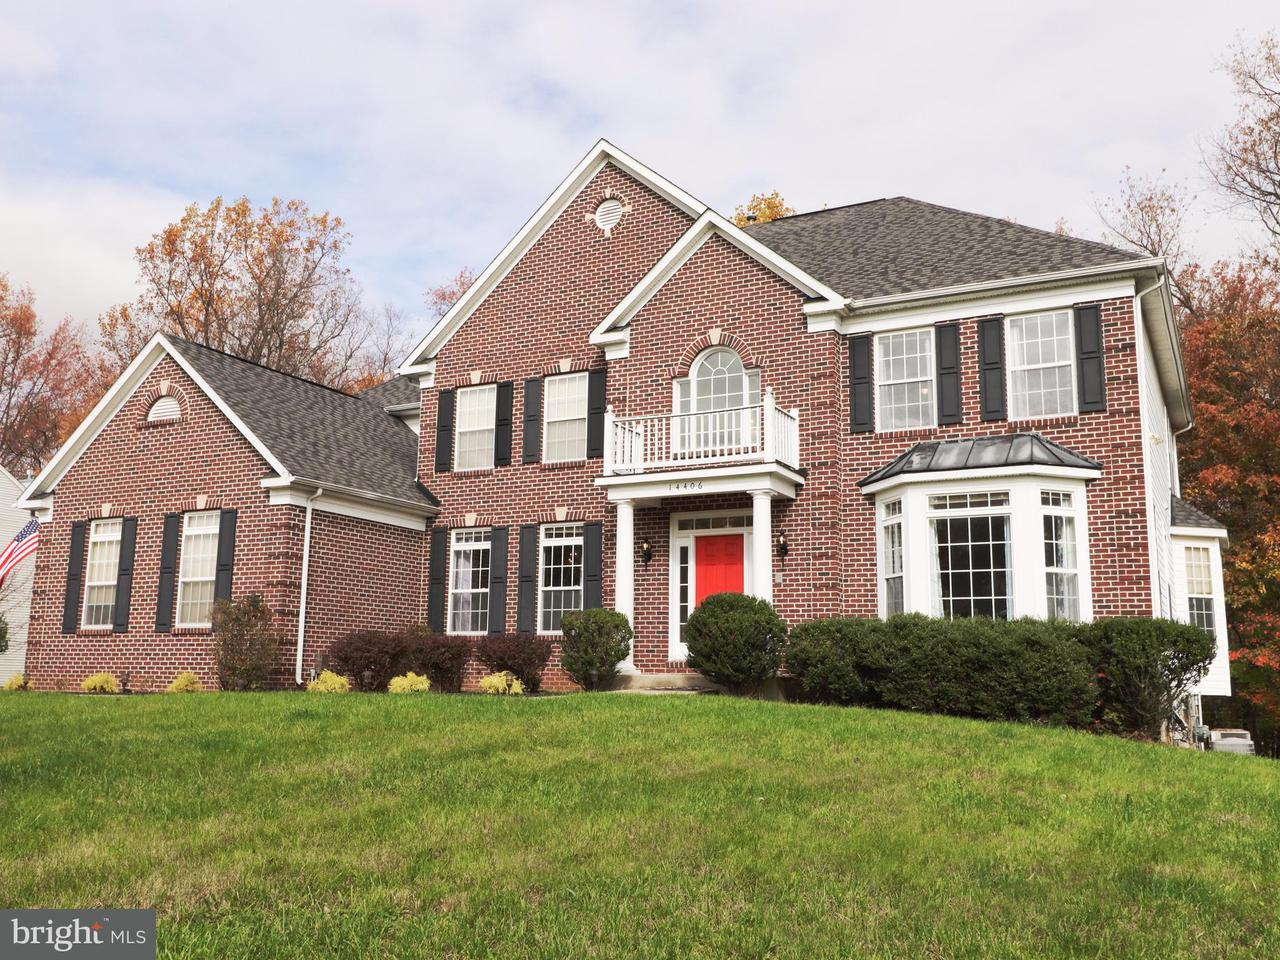 Single Family Home for Sale at 14406 DUNSTABLE Court 14406 DUNSTABLE Court Bowie, Maryland 20721 United States